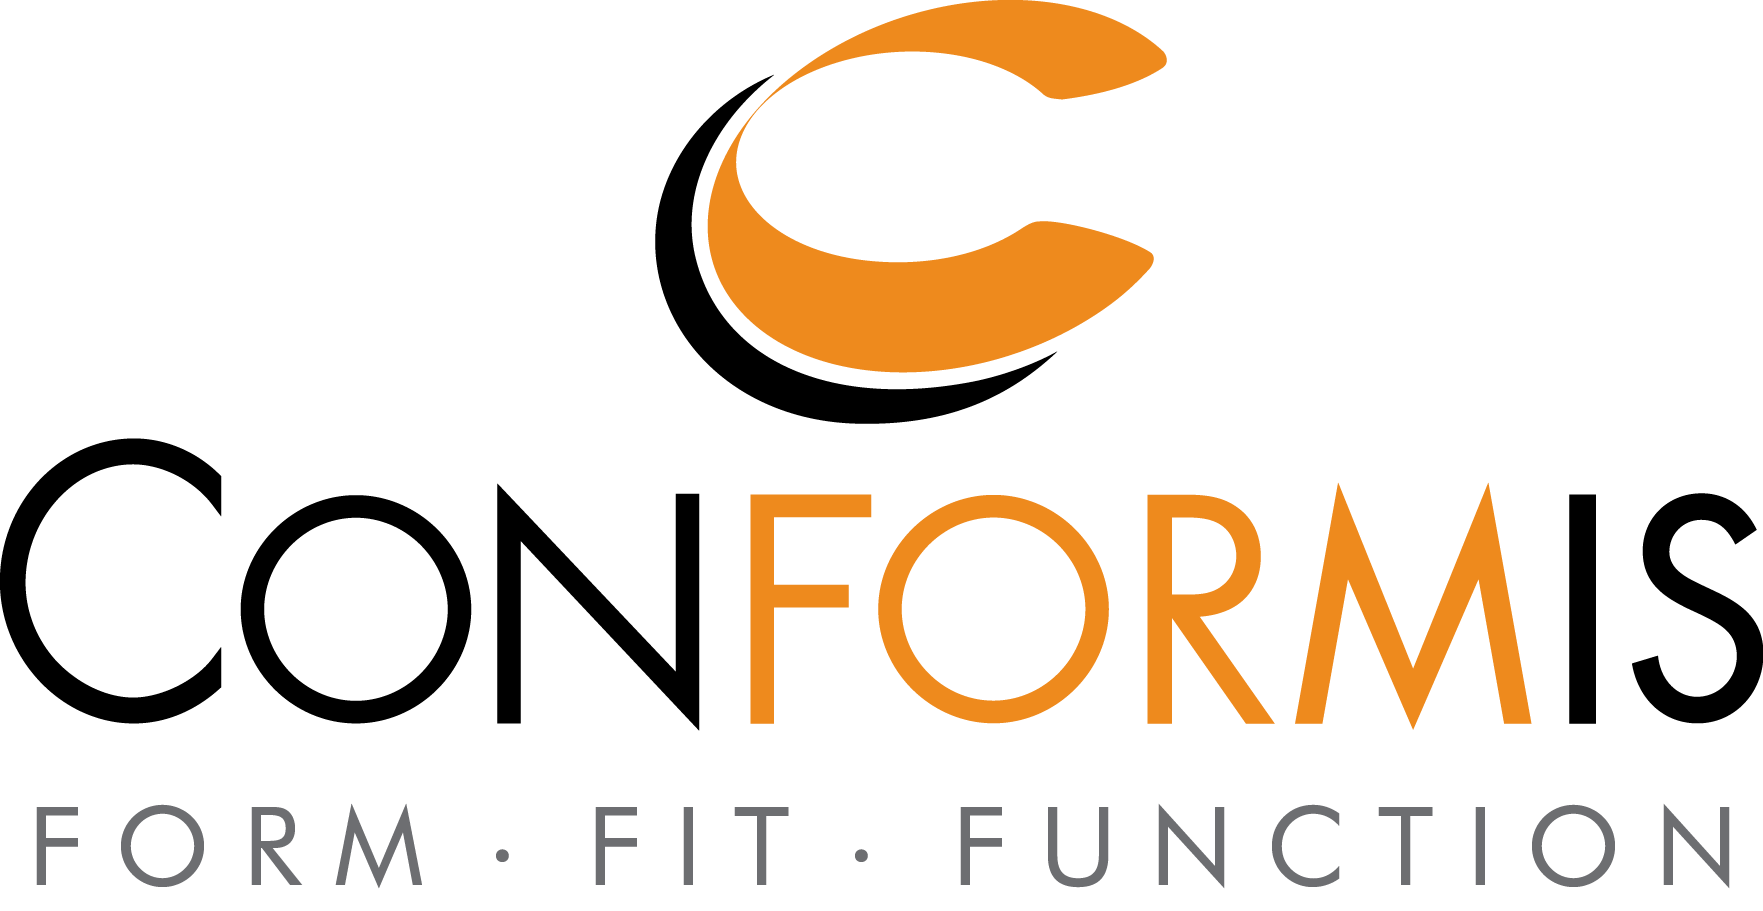 Form fit function.png